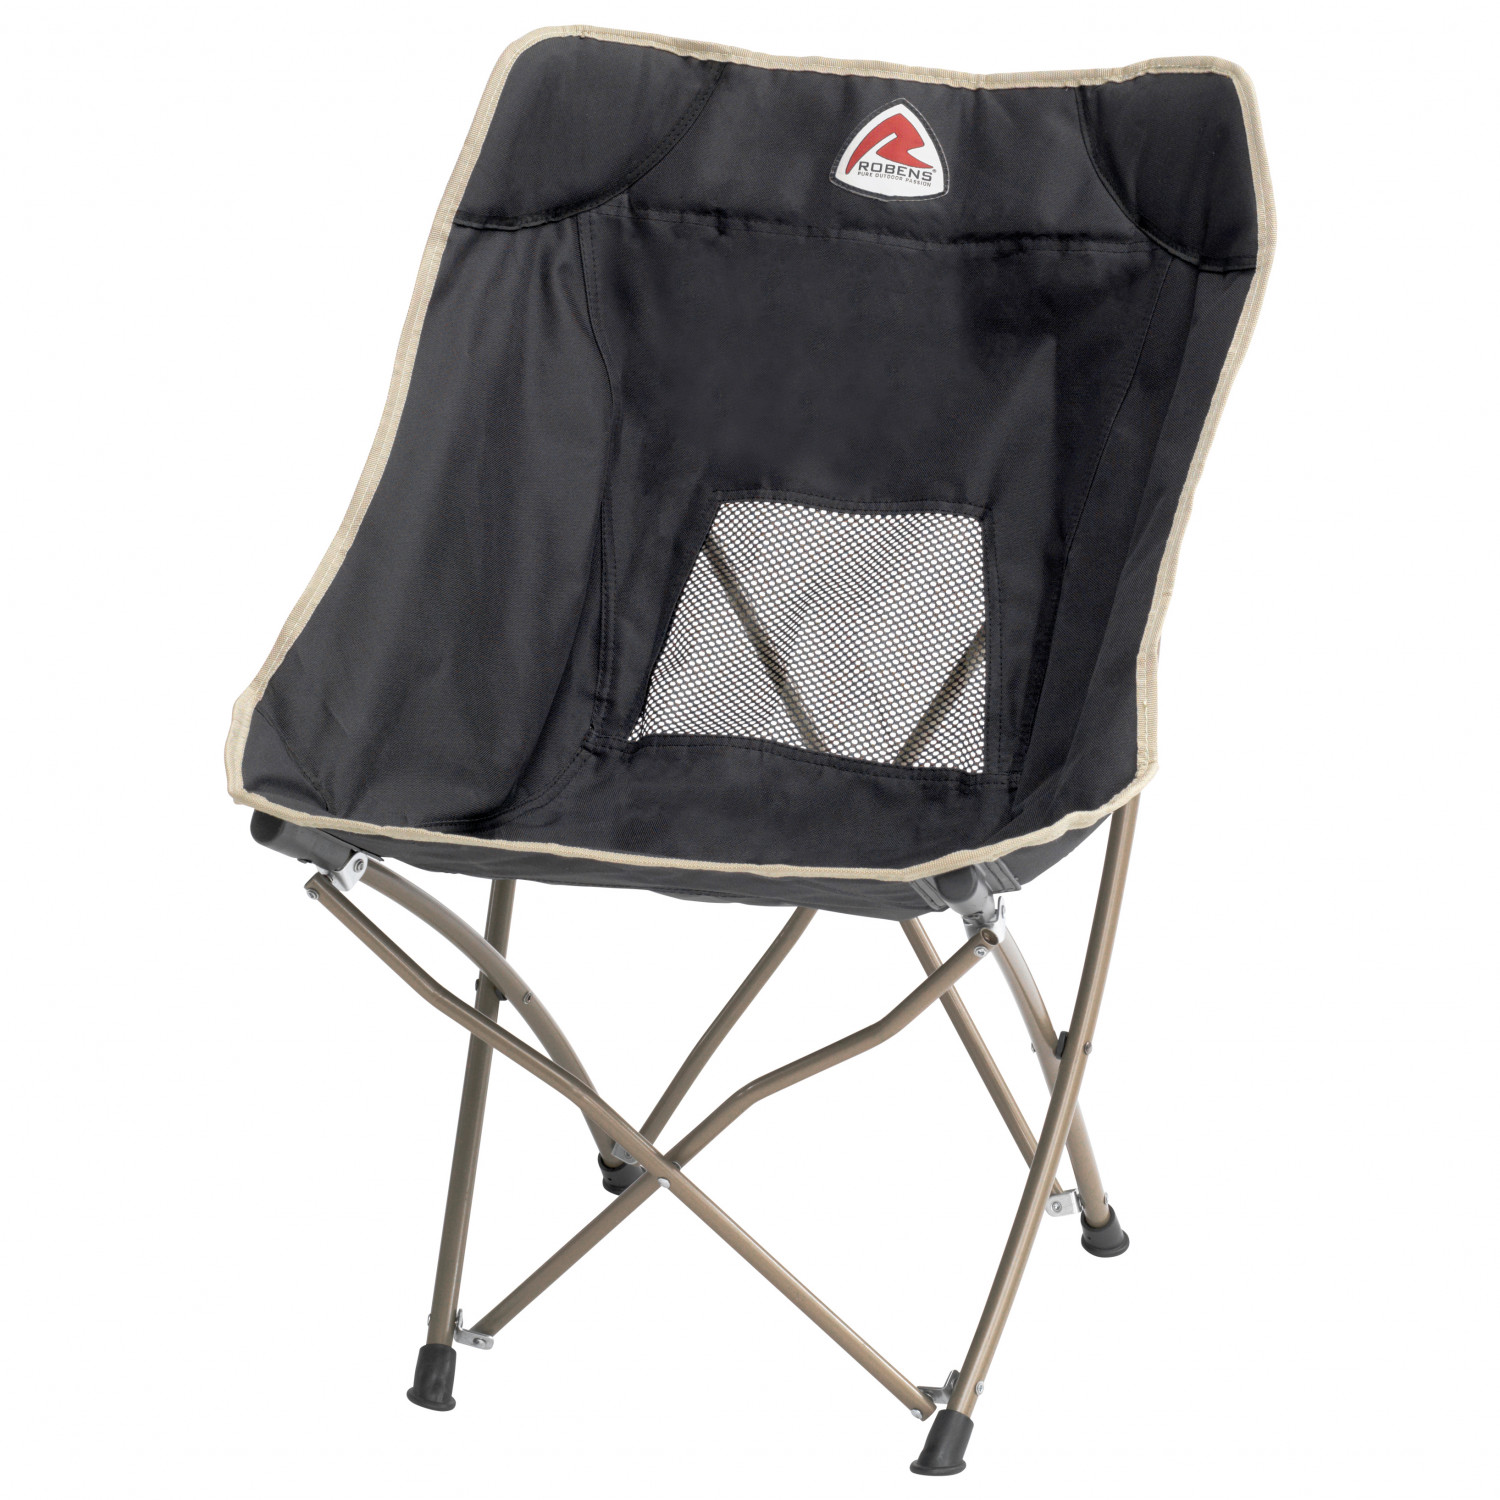 Robens Hawk Camping Chair Buy Online Alpinetrek Co Uk